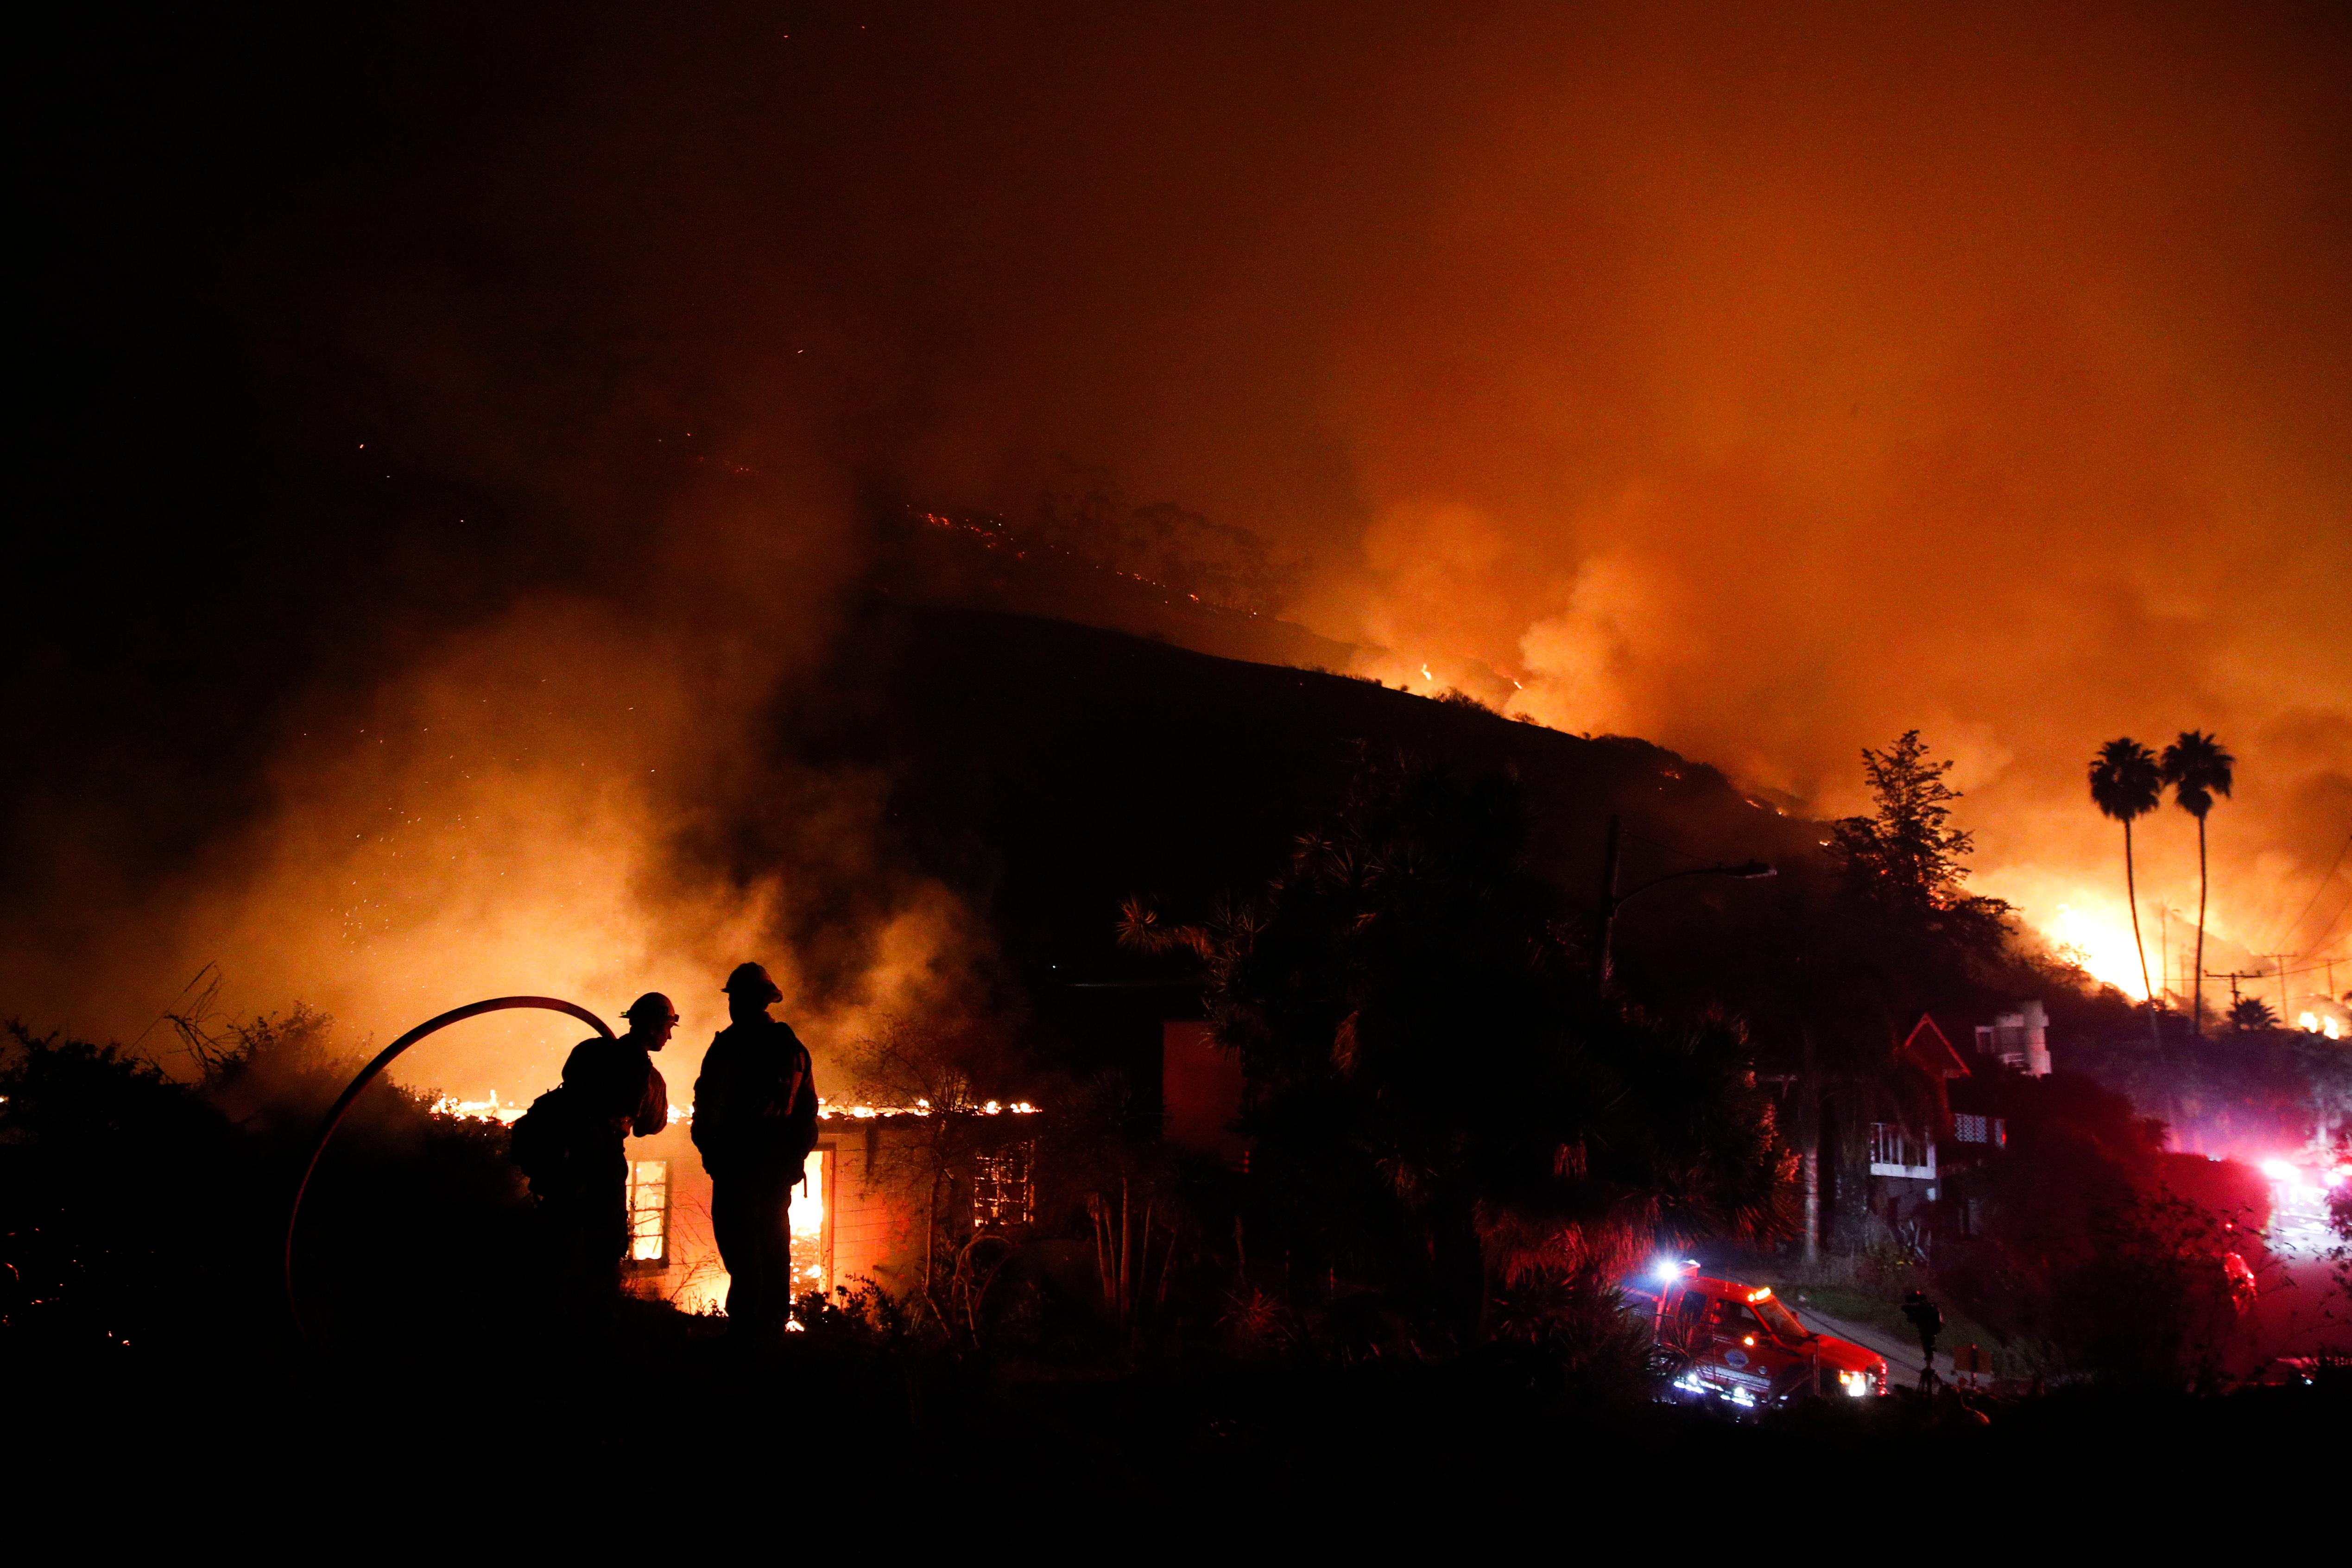 Two firefighters watch as a home burns in a wildfire in La Conchita, Calif., Thursday, Dec. 7, 2017. The wind-swept blazes have forced tens of thousands of evacuations and destroyed dozens of homes. (AP Photo/Jae C. Hong)